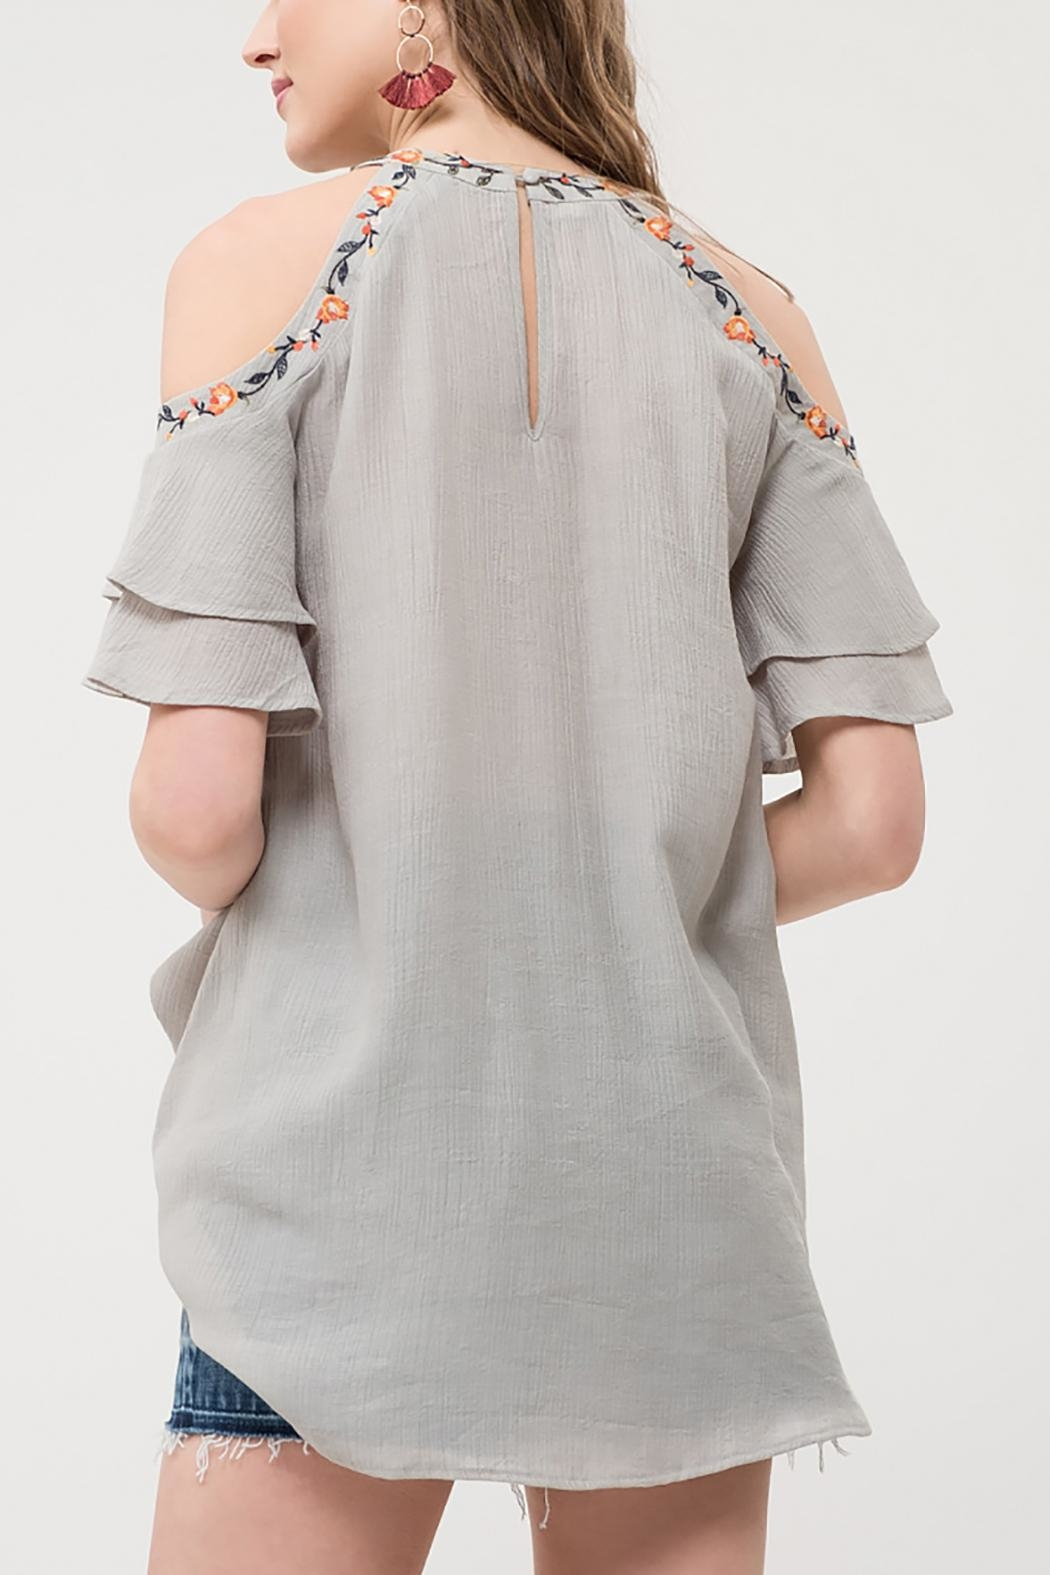 Blu Pepper Embroidered Ruffle Top - Side Cropped Image